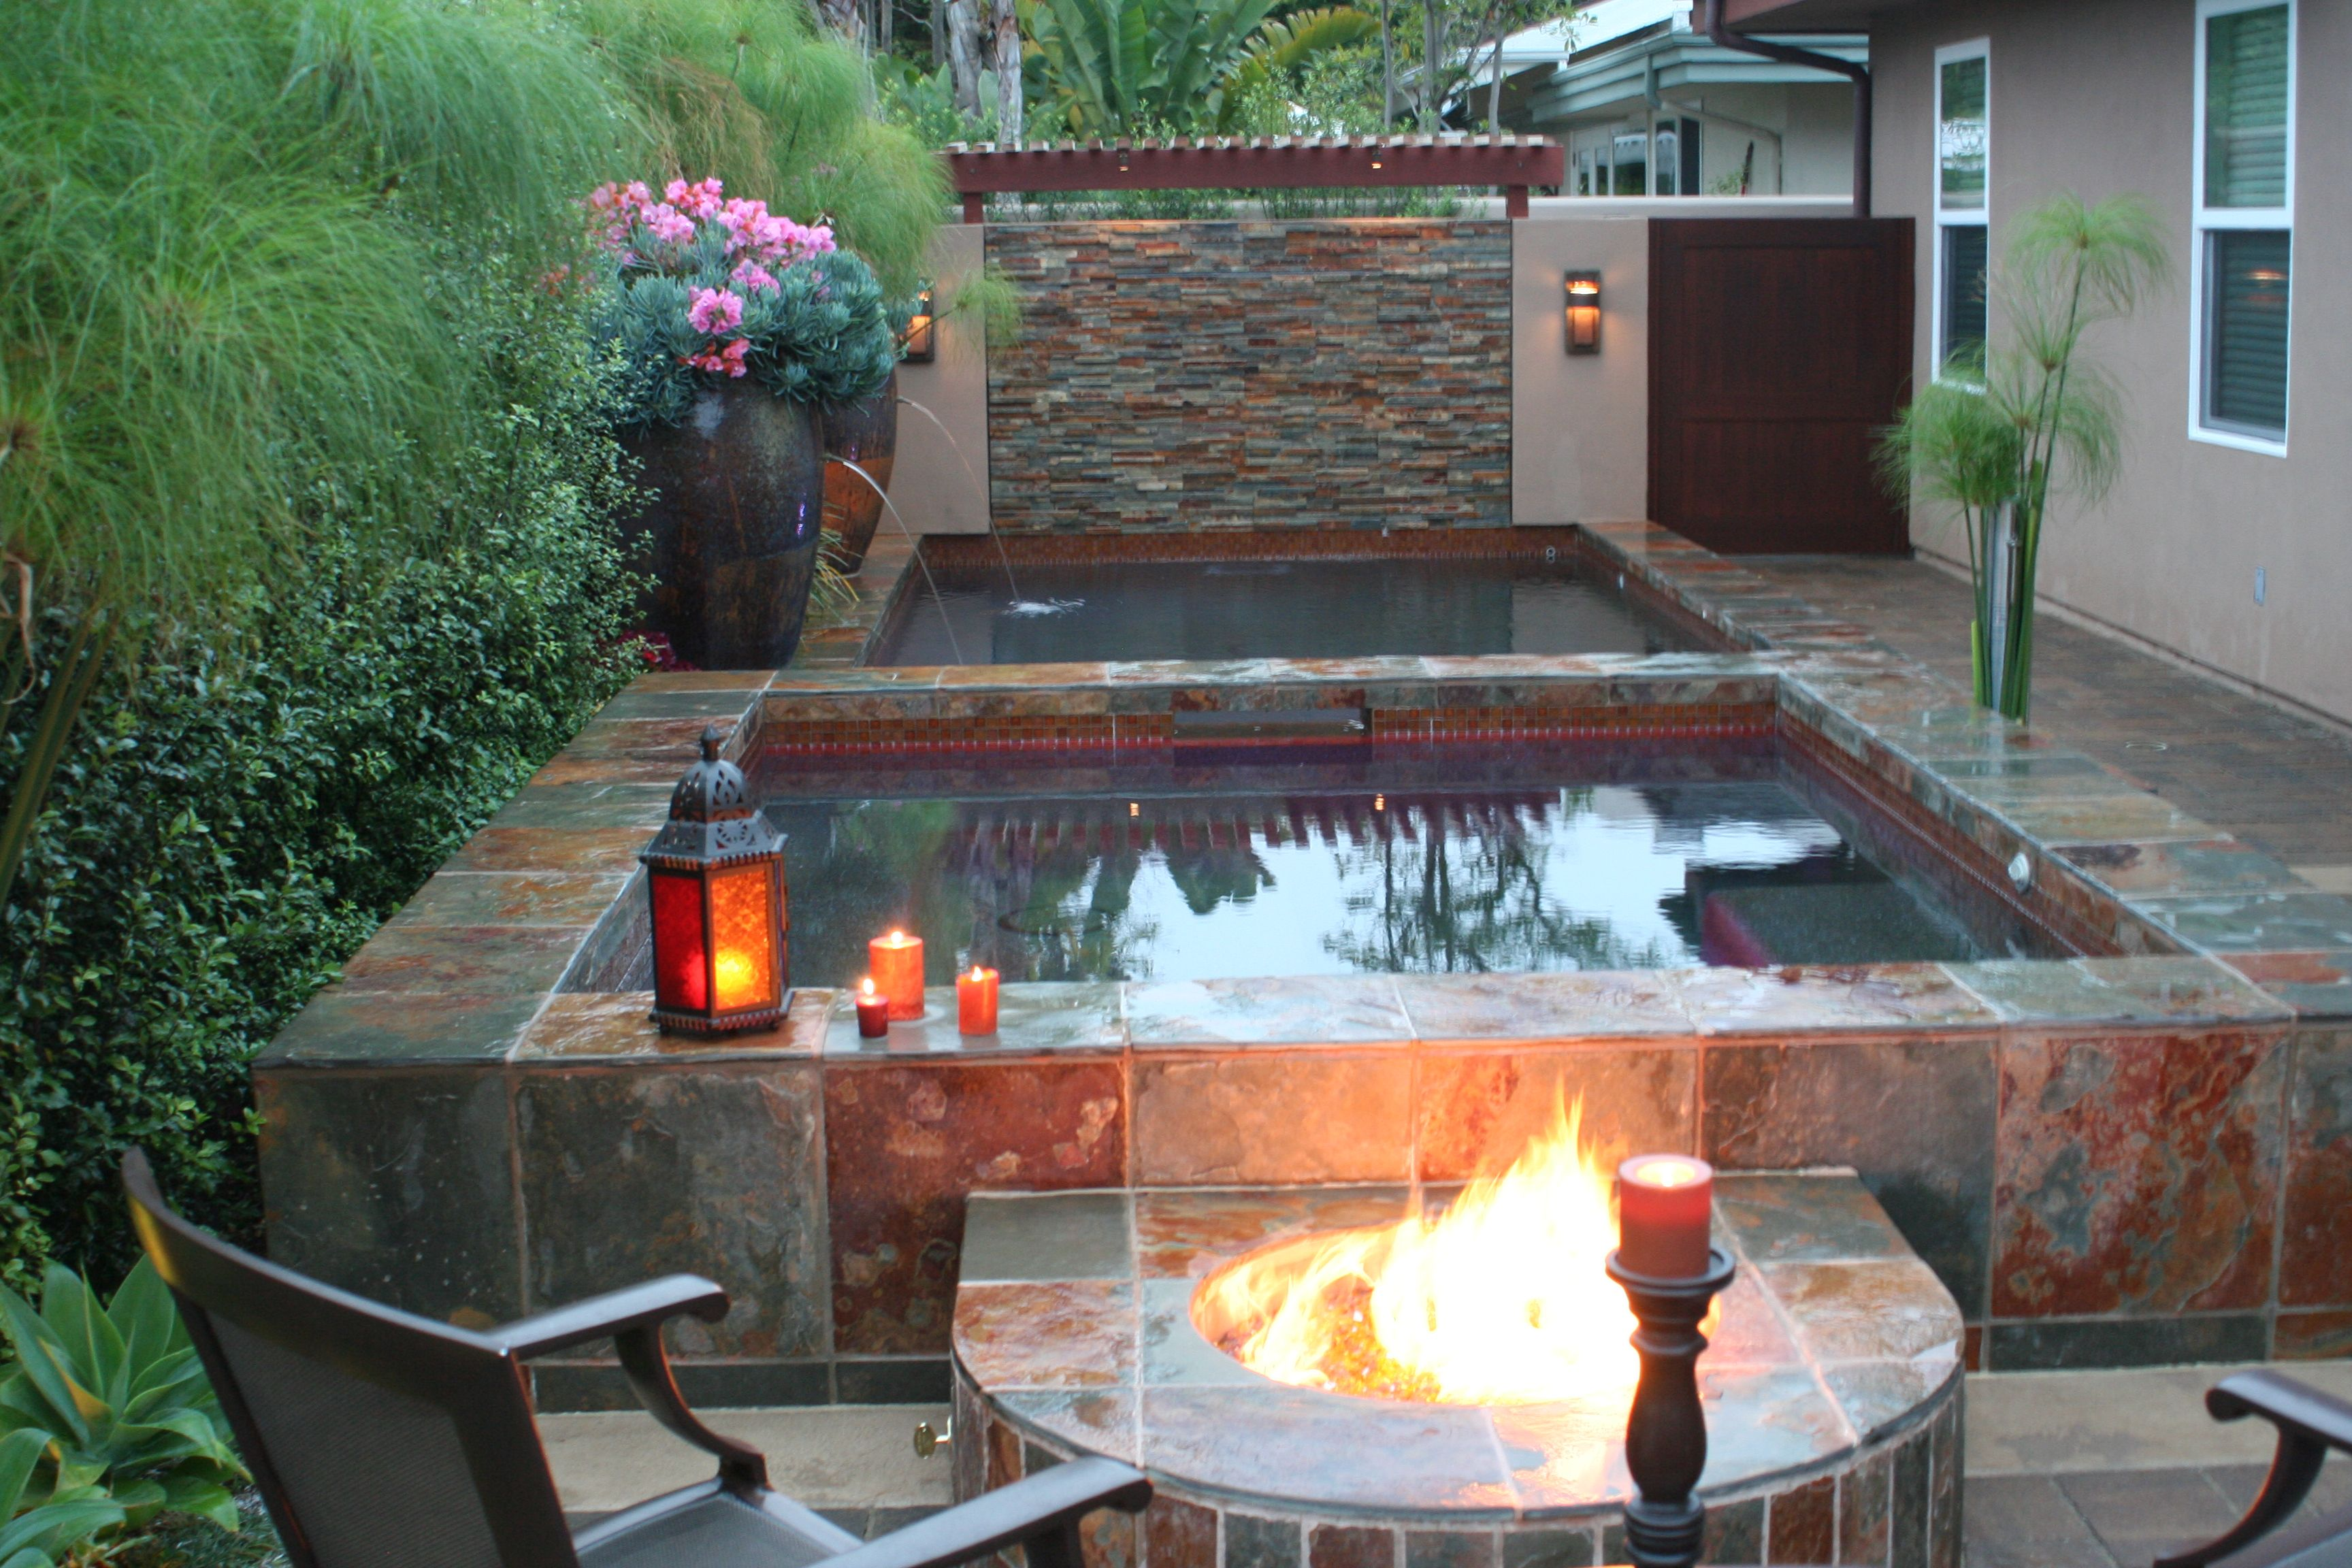 Minus The Pool And Make Fire Pit Rectangular Backyard